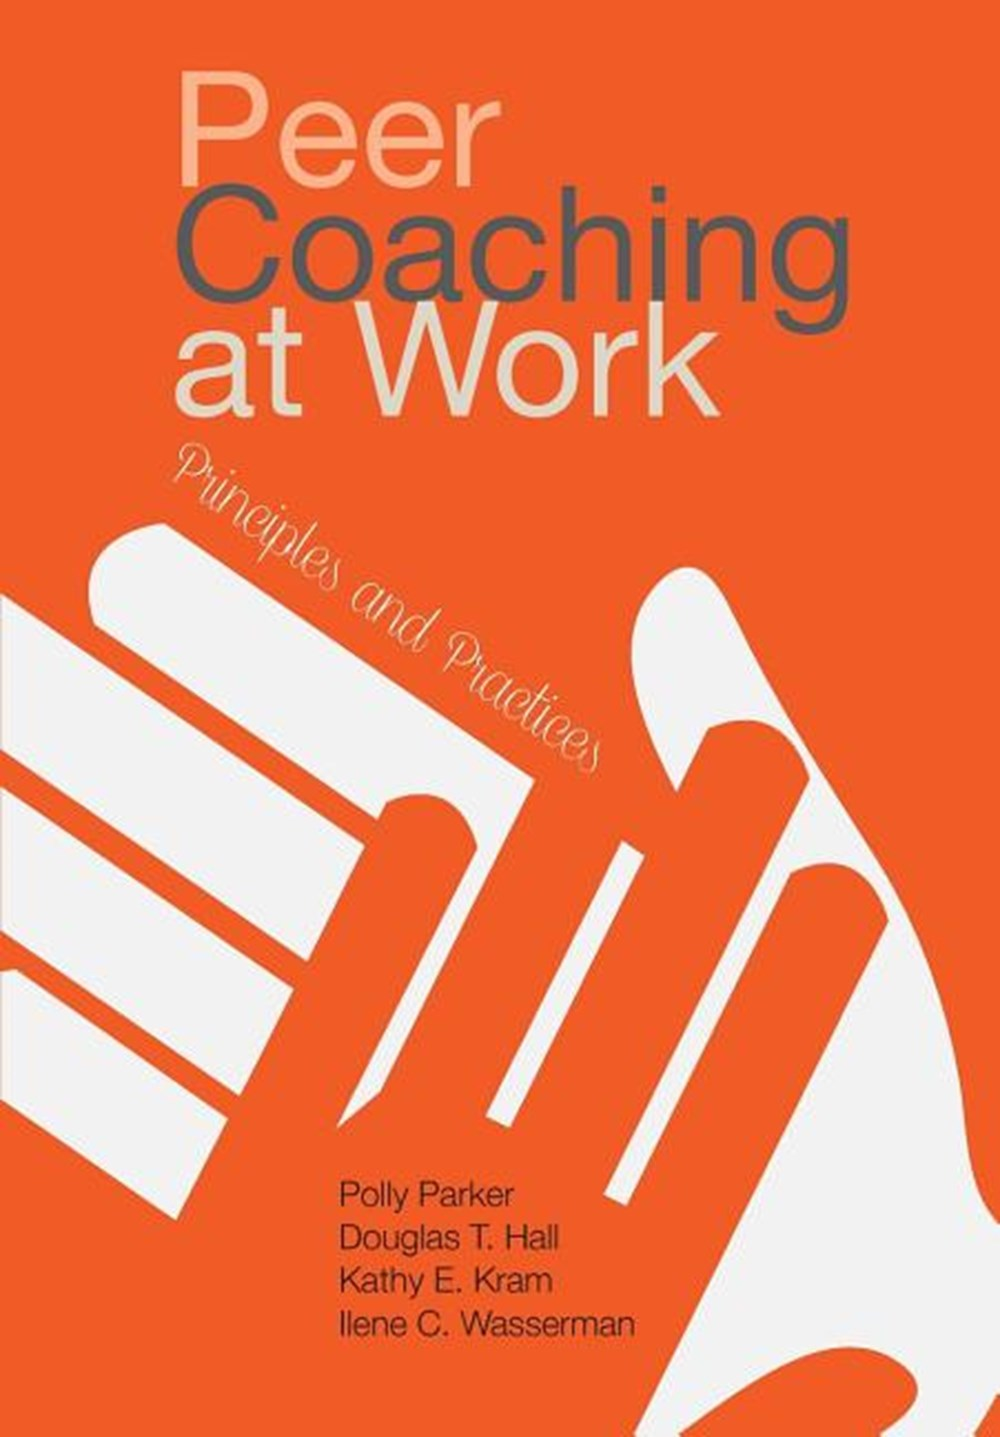 Peer Coaching at Work: Principles and Practices